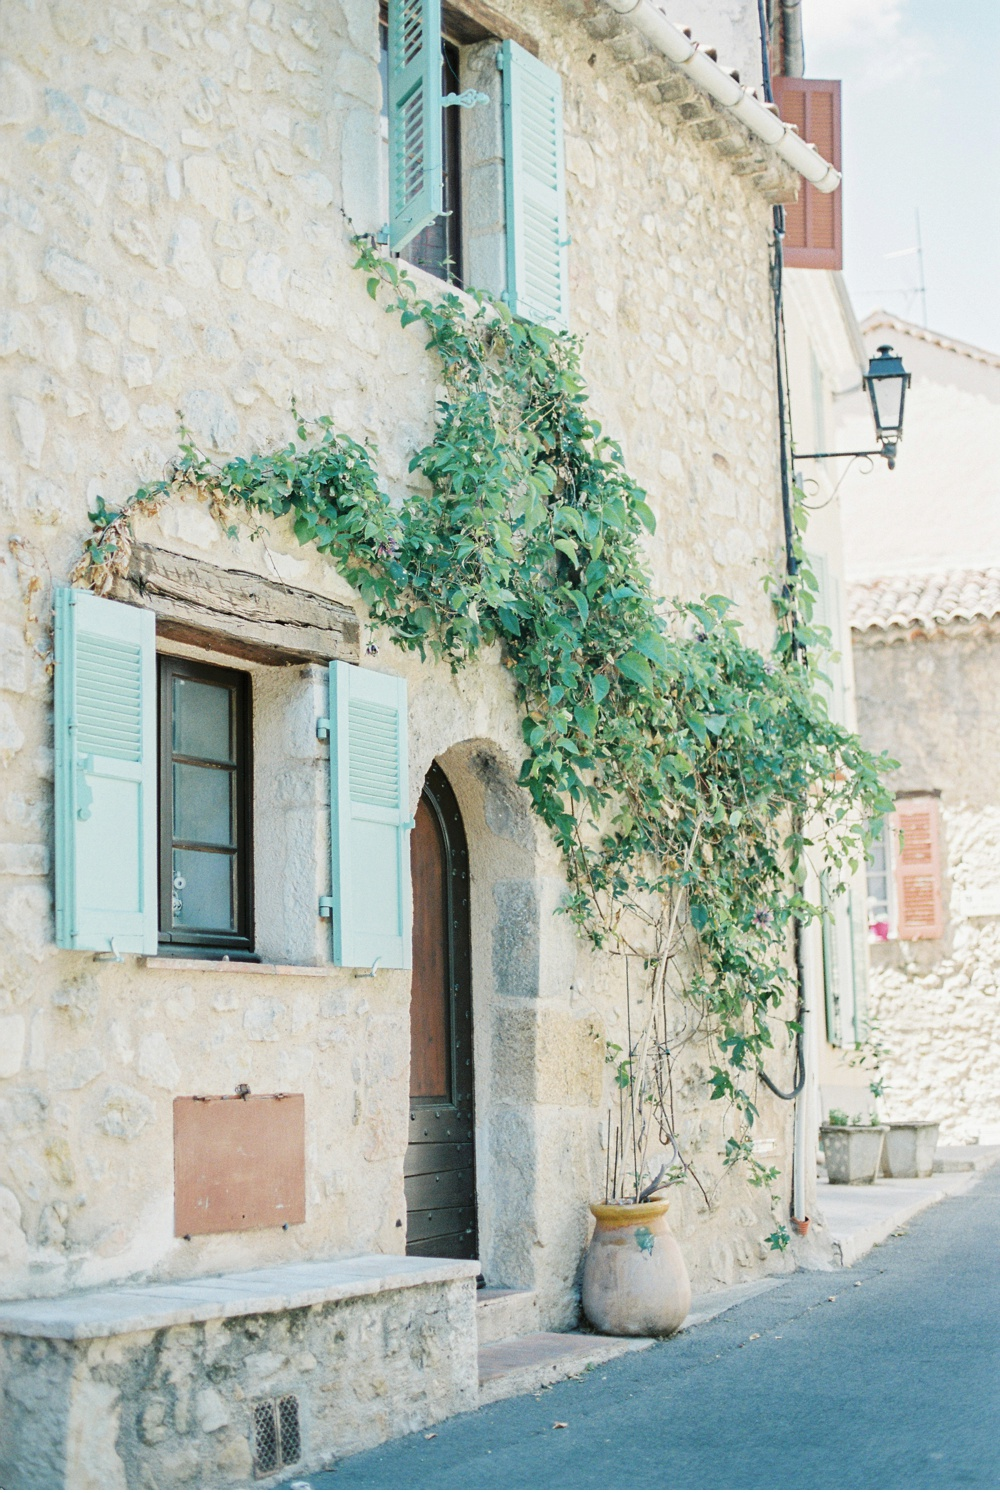 Provence_France_WeddingPhotographer©MadalinaSheldon_0065.jpg